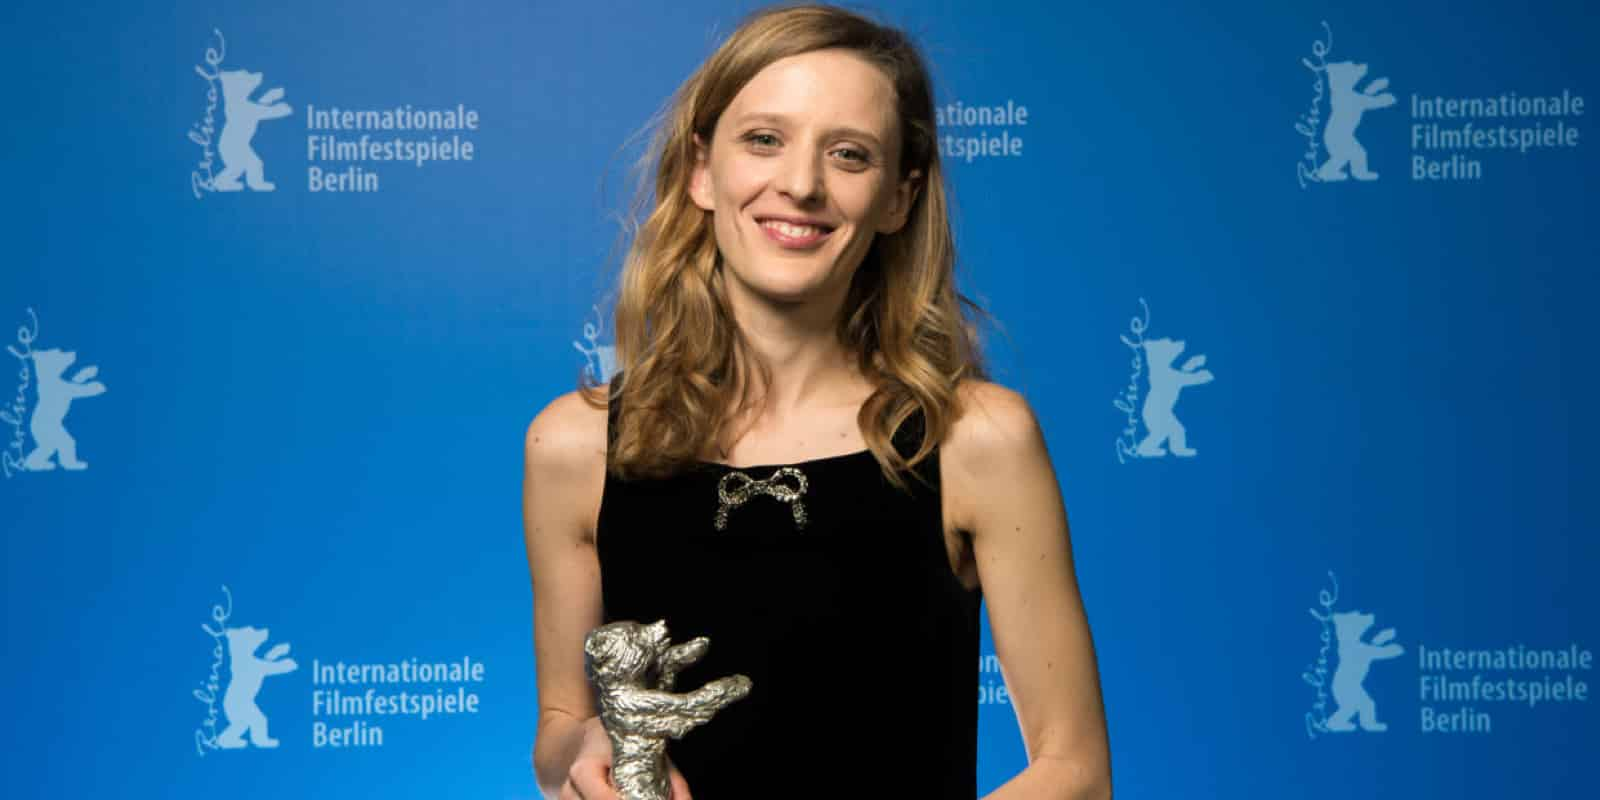 Best Female Directors - Mia Hansen-Love